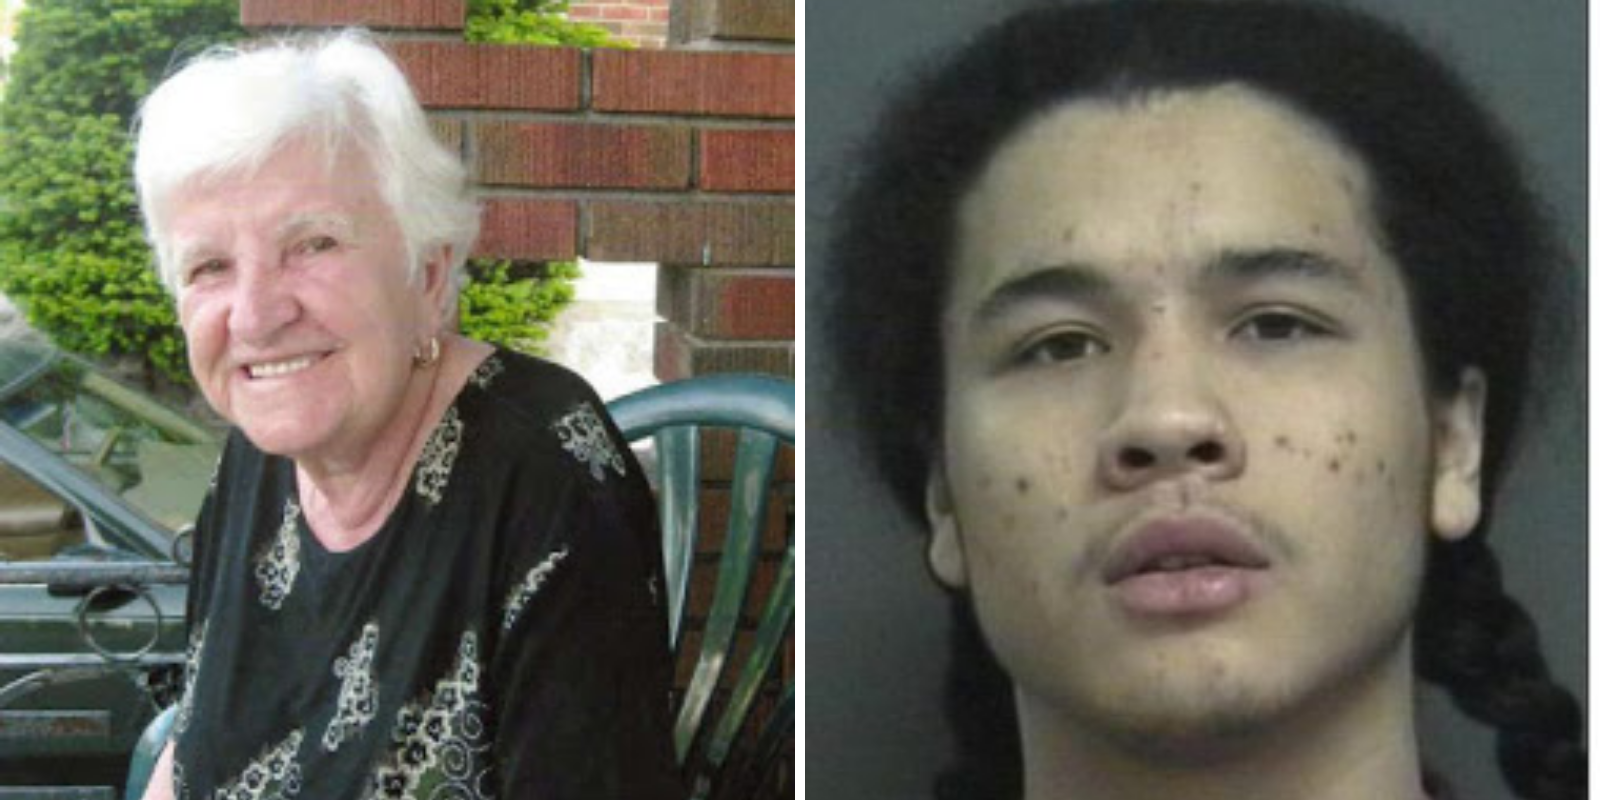 Toronto man receives 15 year 'life sentence' after beating 82-year-old Scarborough grandmother to death